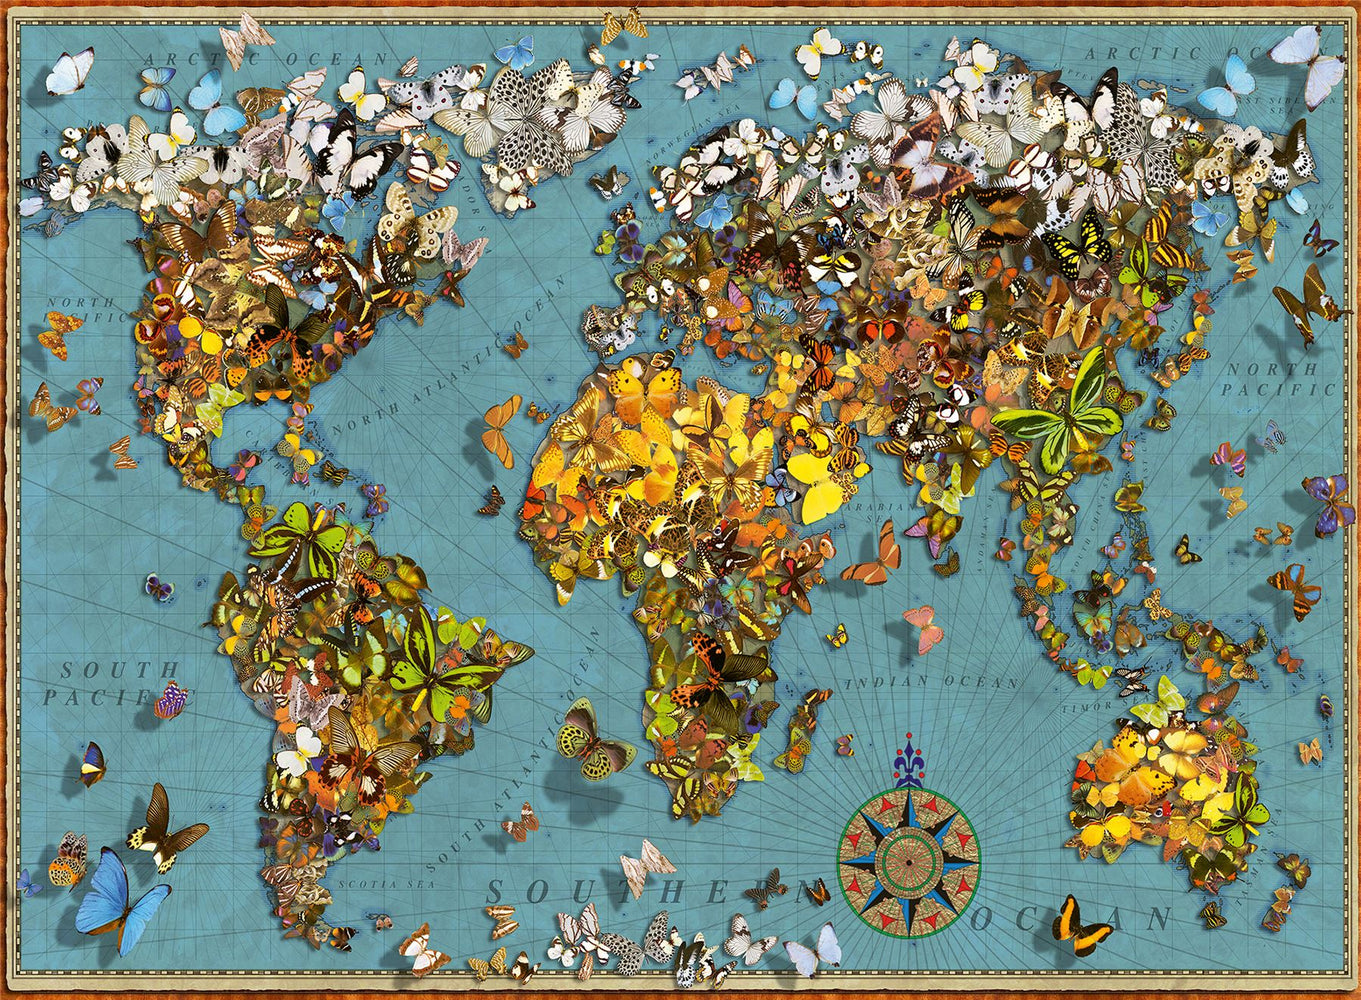 World of Butterflies 500 Piece Jigsaw Puzzle